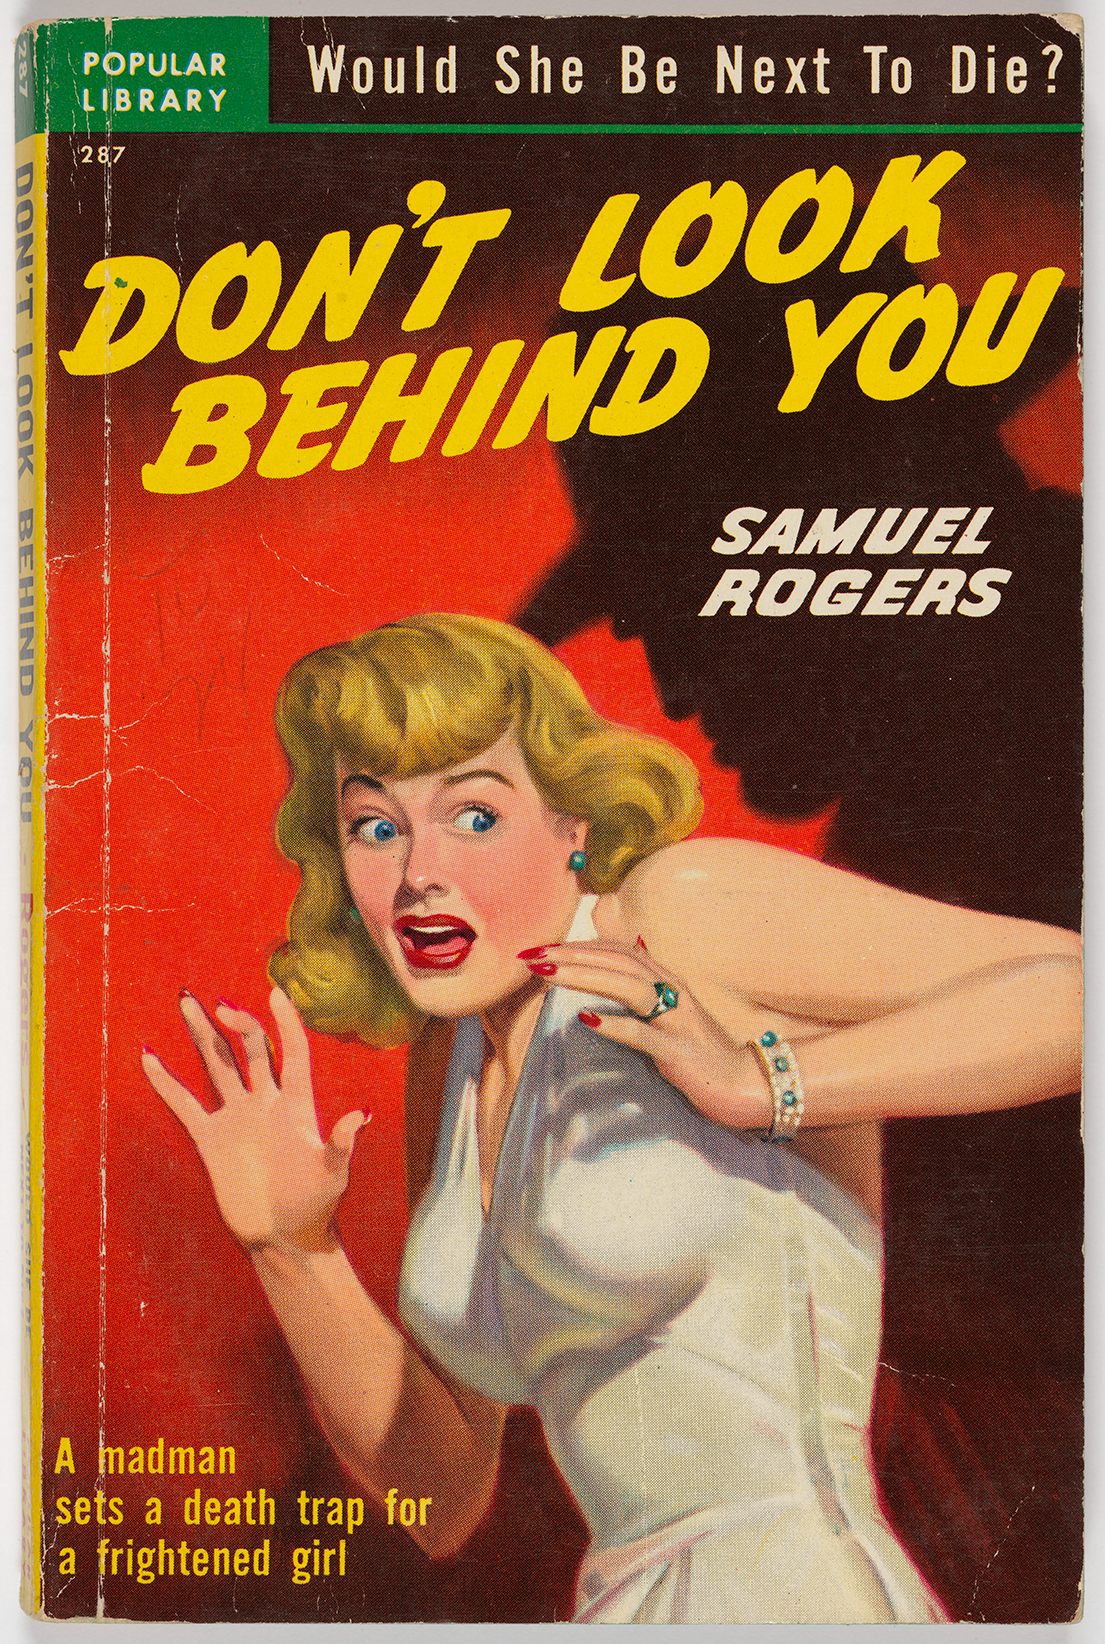 "This novel from Samuel Rogers was published by Popular Library with the tagline, ""Would she be next to die?"" The plot is described as follows: ""A madman sets a deathtrap for a frightened girl."" A blonde woman wearing a white dress holds up her hands in fear, and a dark shadow of a frowning man a hat appears on a red background behind her. The woman has bright red nails and jewelry that matches her blue eyes, and her hair is carefully coiffed."